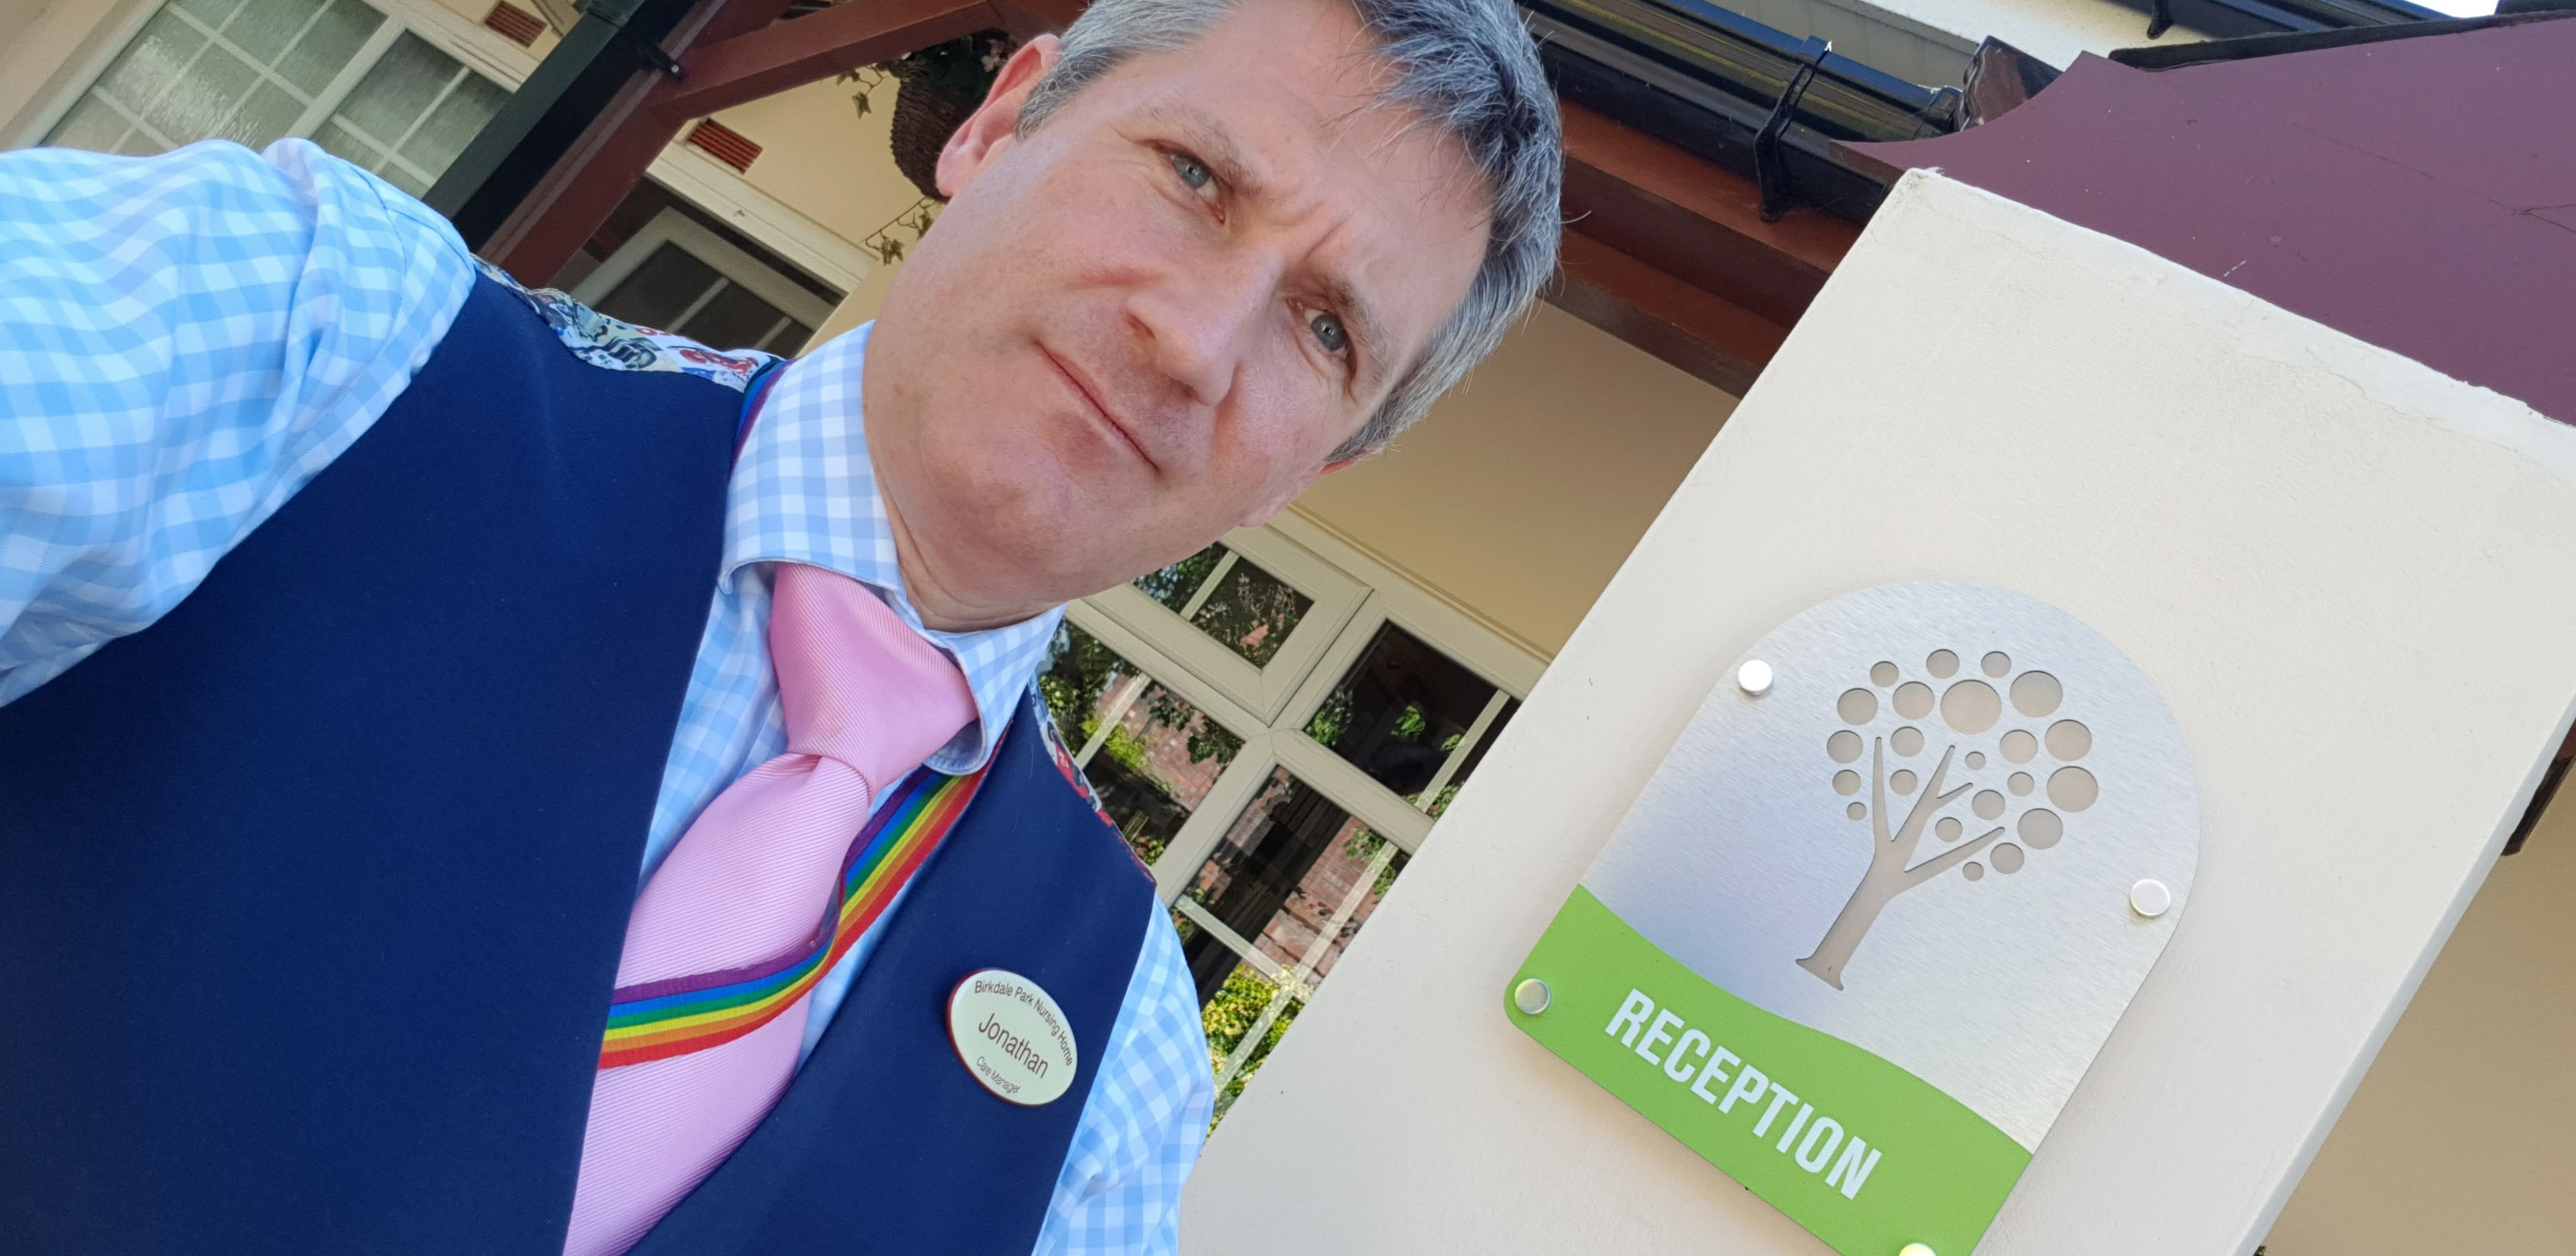 Jonathan Cunningham MBE, the Registered Care Manager at